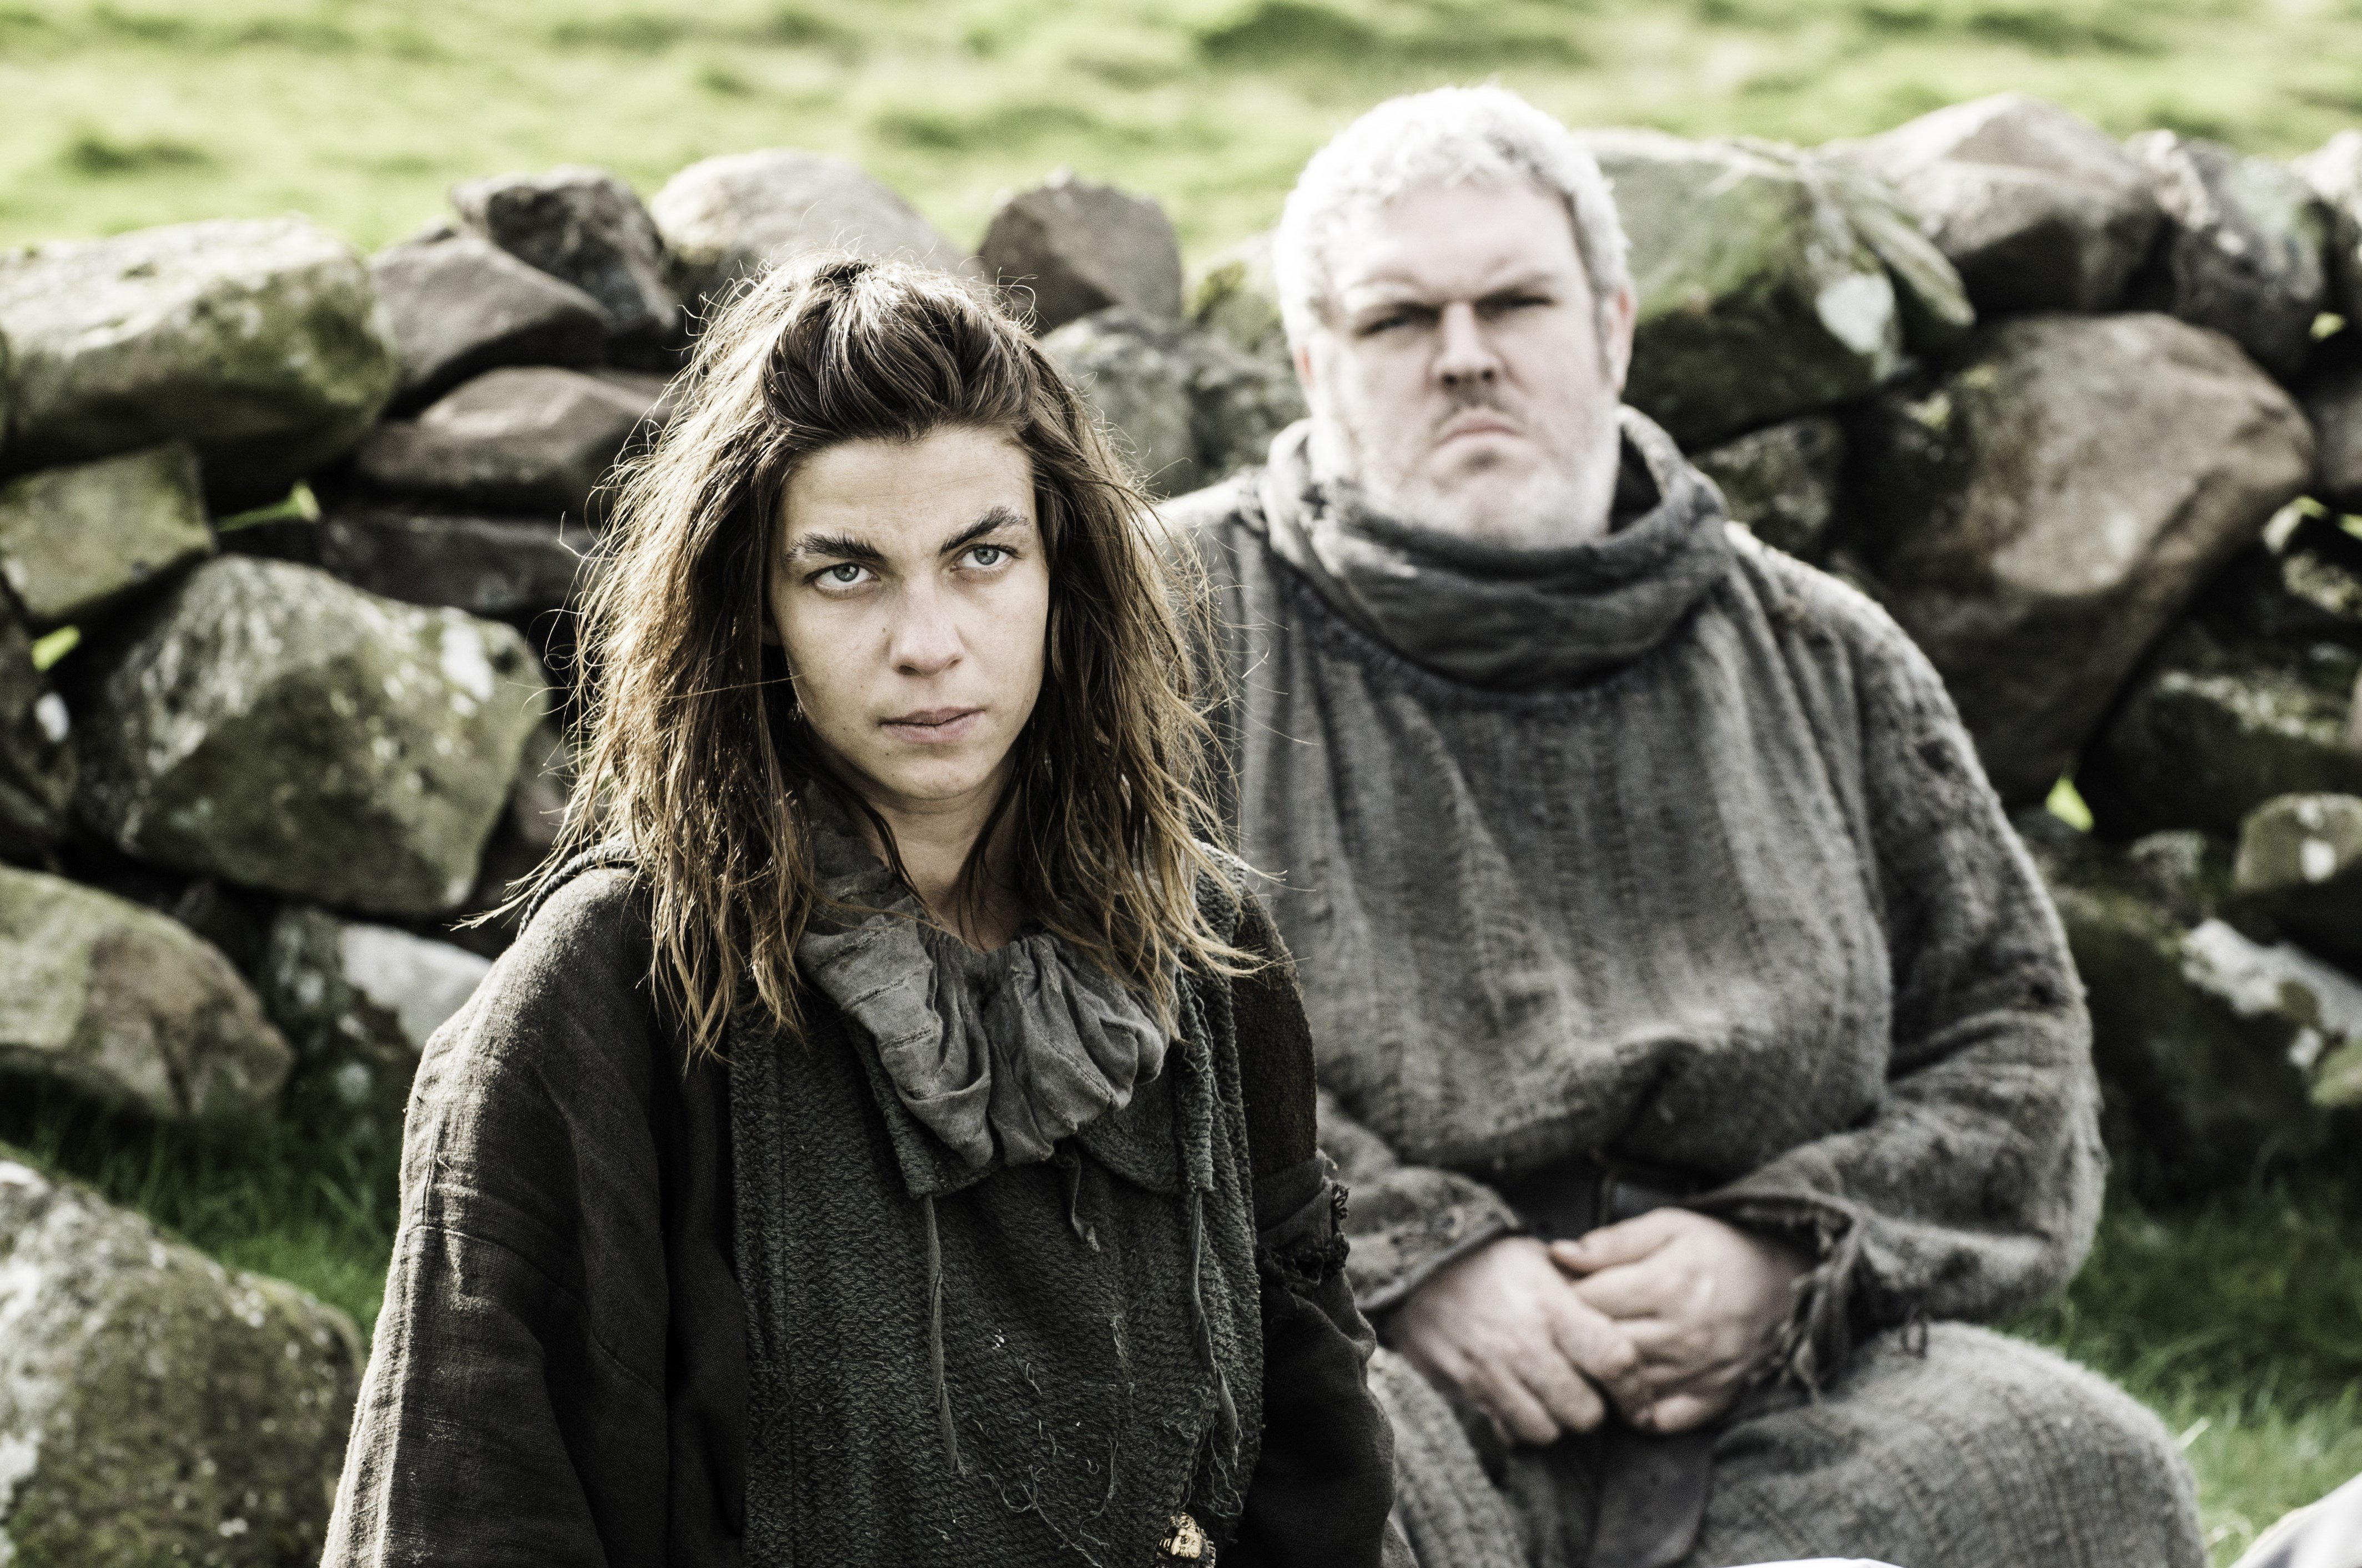 30+ Games Of Thrones Personnages Saison 1 Wallpapers